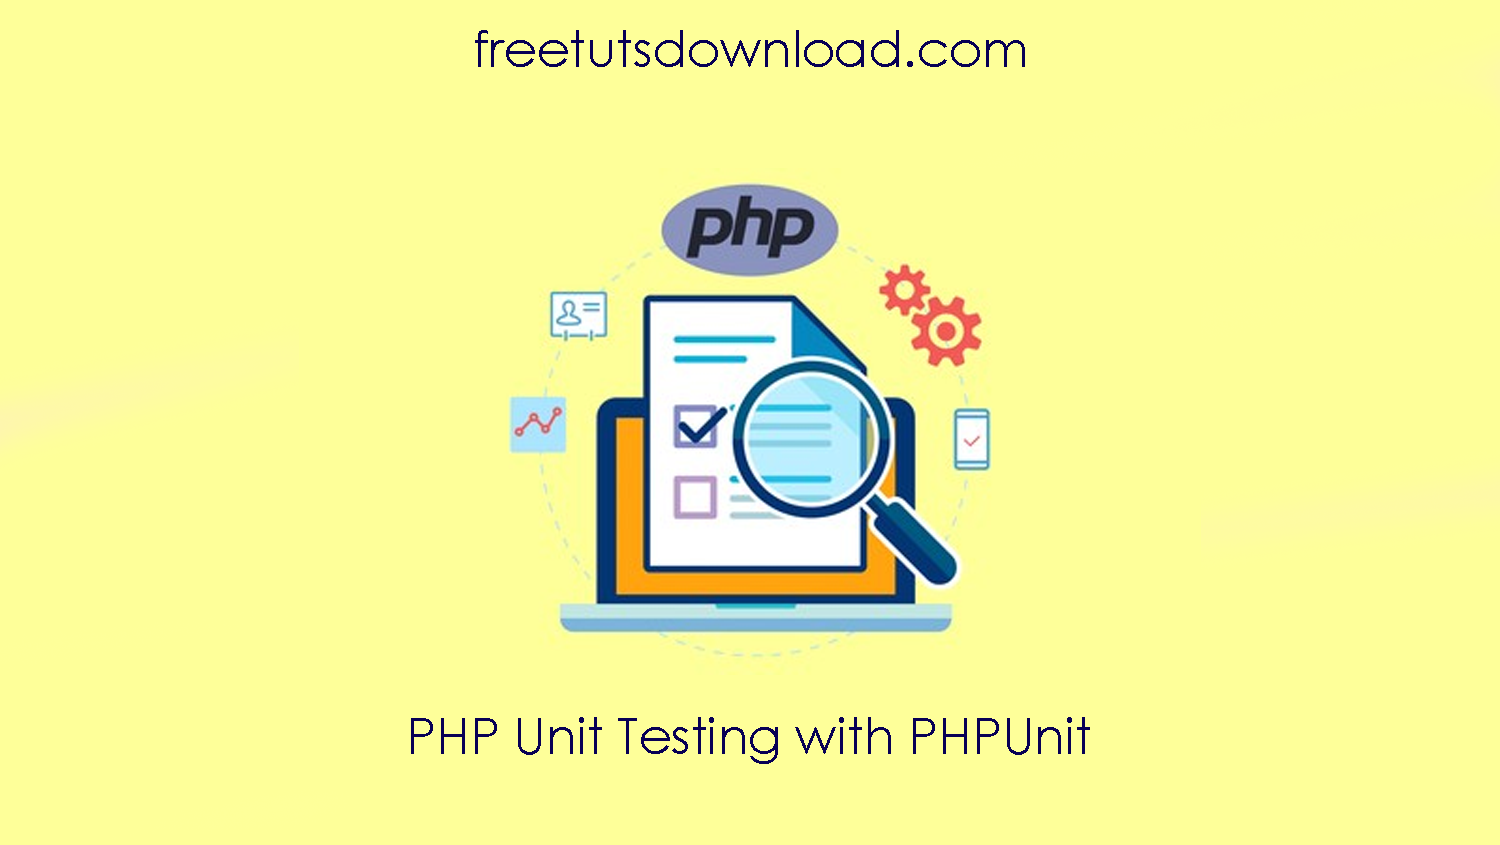 PHP Unit Testing with PHPUnit free download